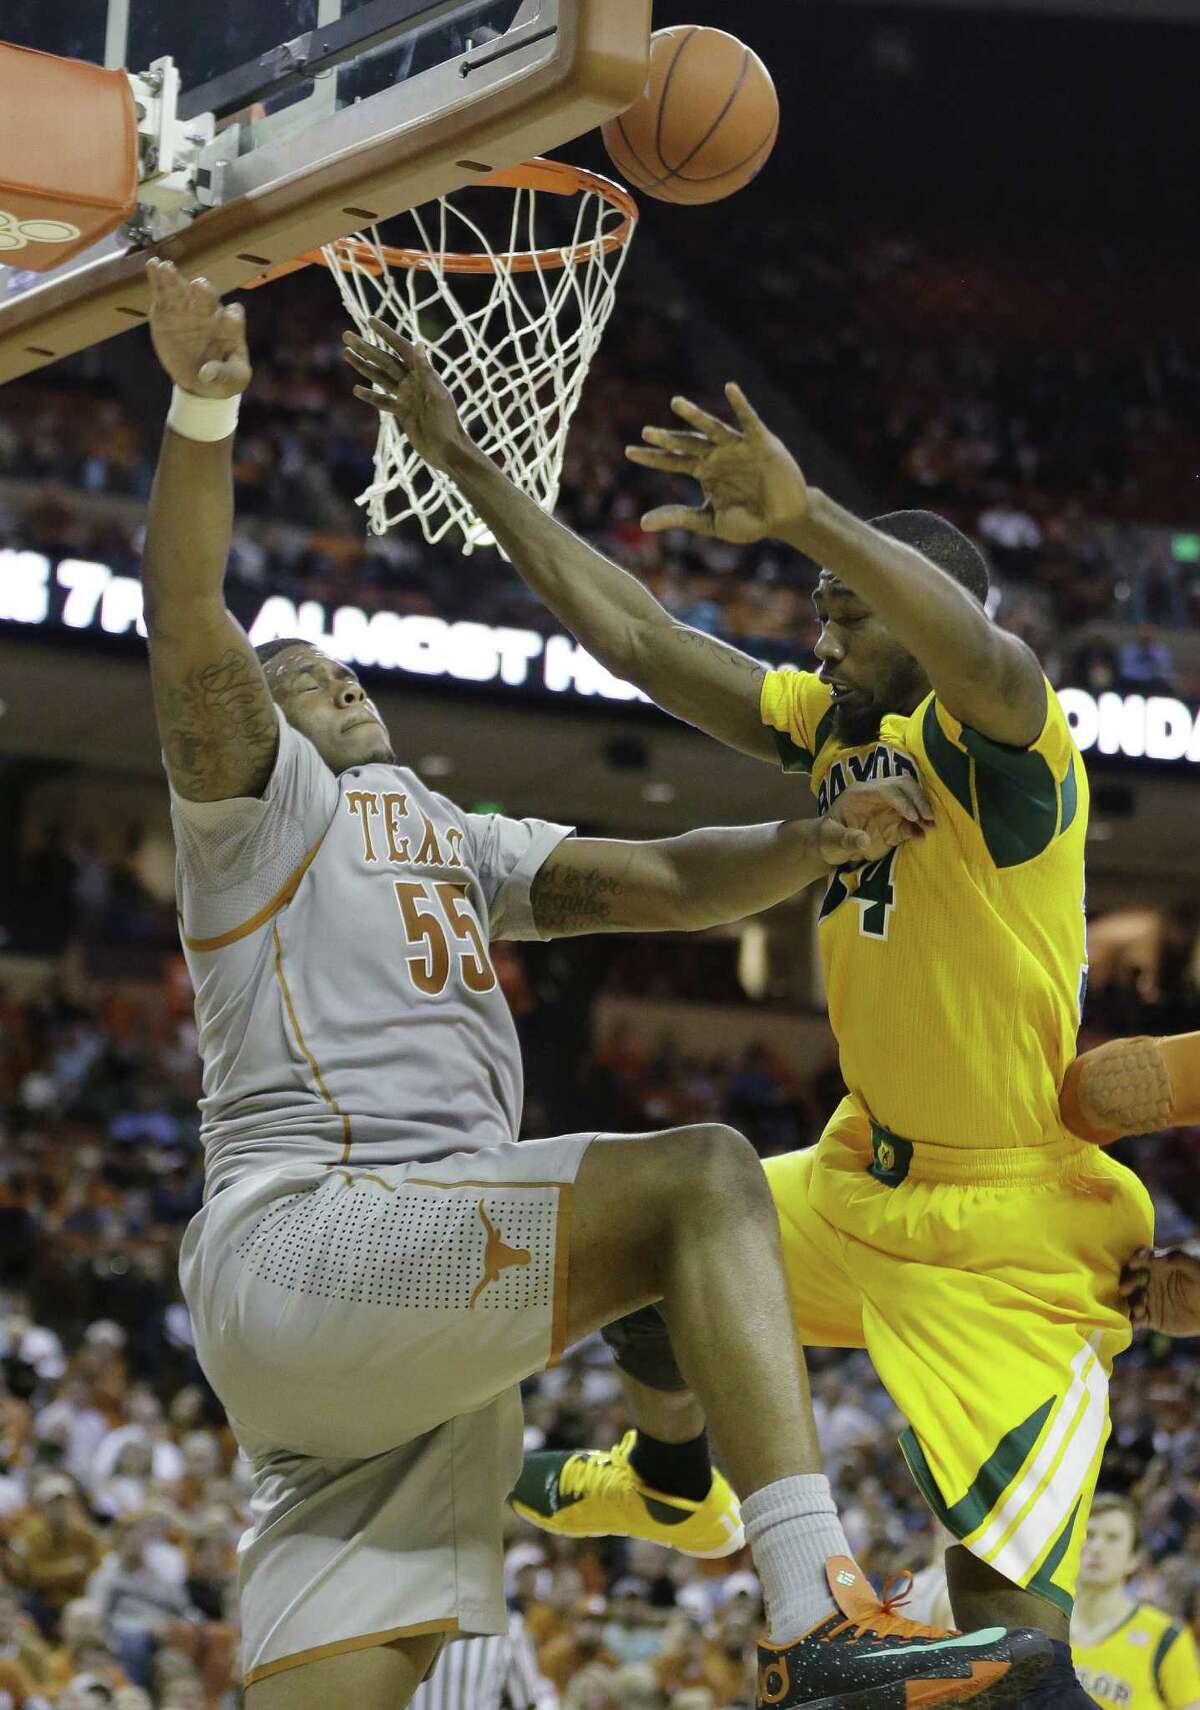 Texas' Cameron Ridley (55) blocks Baylor's Cory Jefferson (34) during the second half of an NCAA college basketball game, Wednesday, Feb. 26, 2014, in Austin, Texas. Texas won 74-69. (AP Photo/Eric Gay)